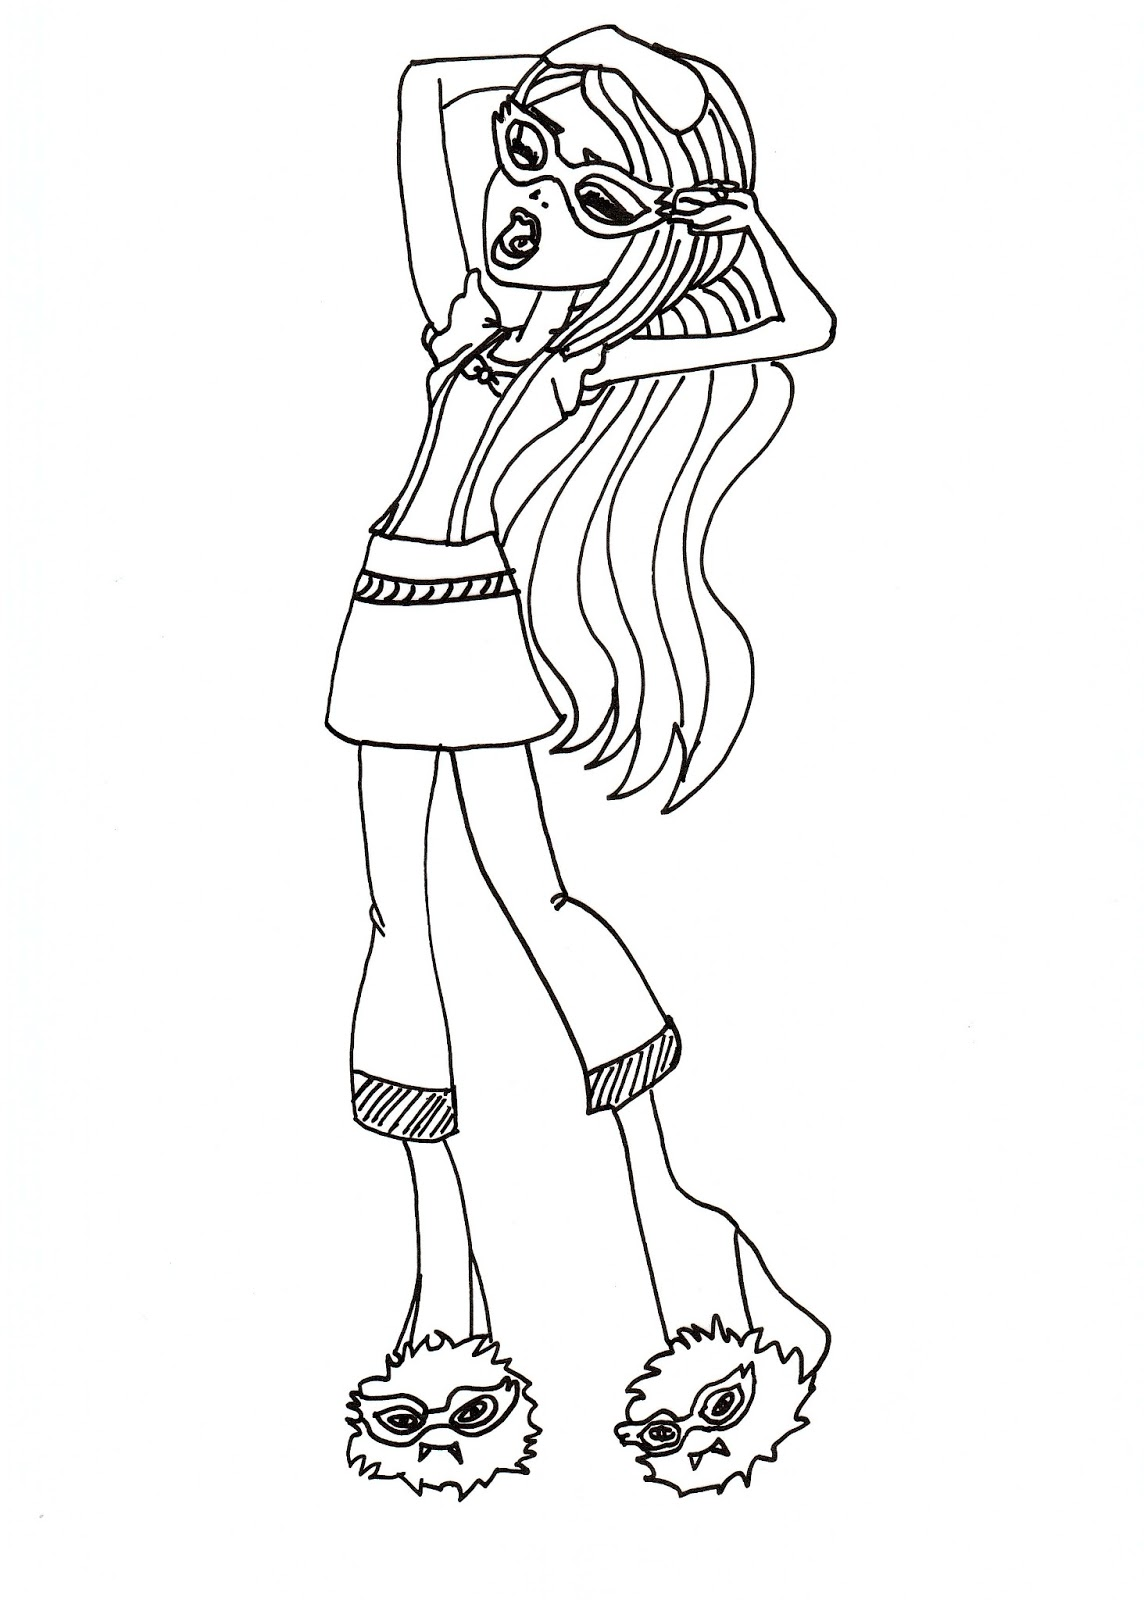 Free Printable Monster High Coloring Pages: Ghoulia Dead